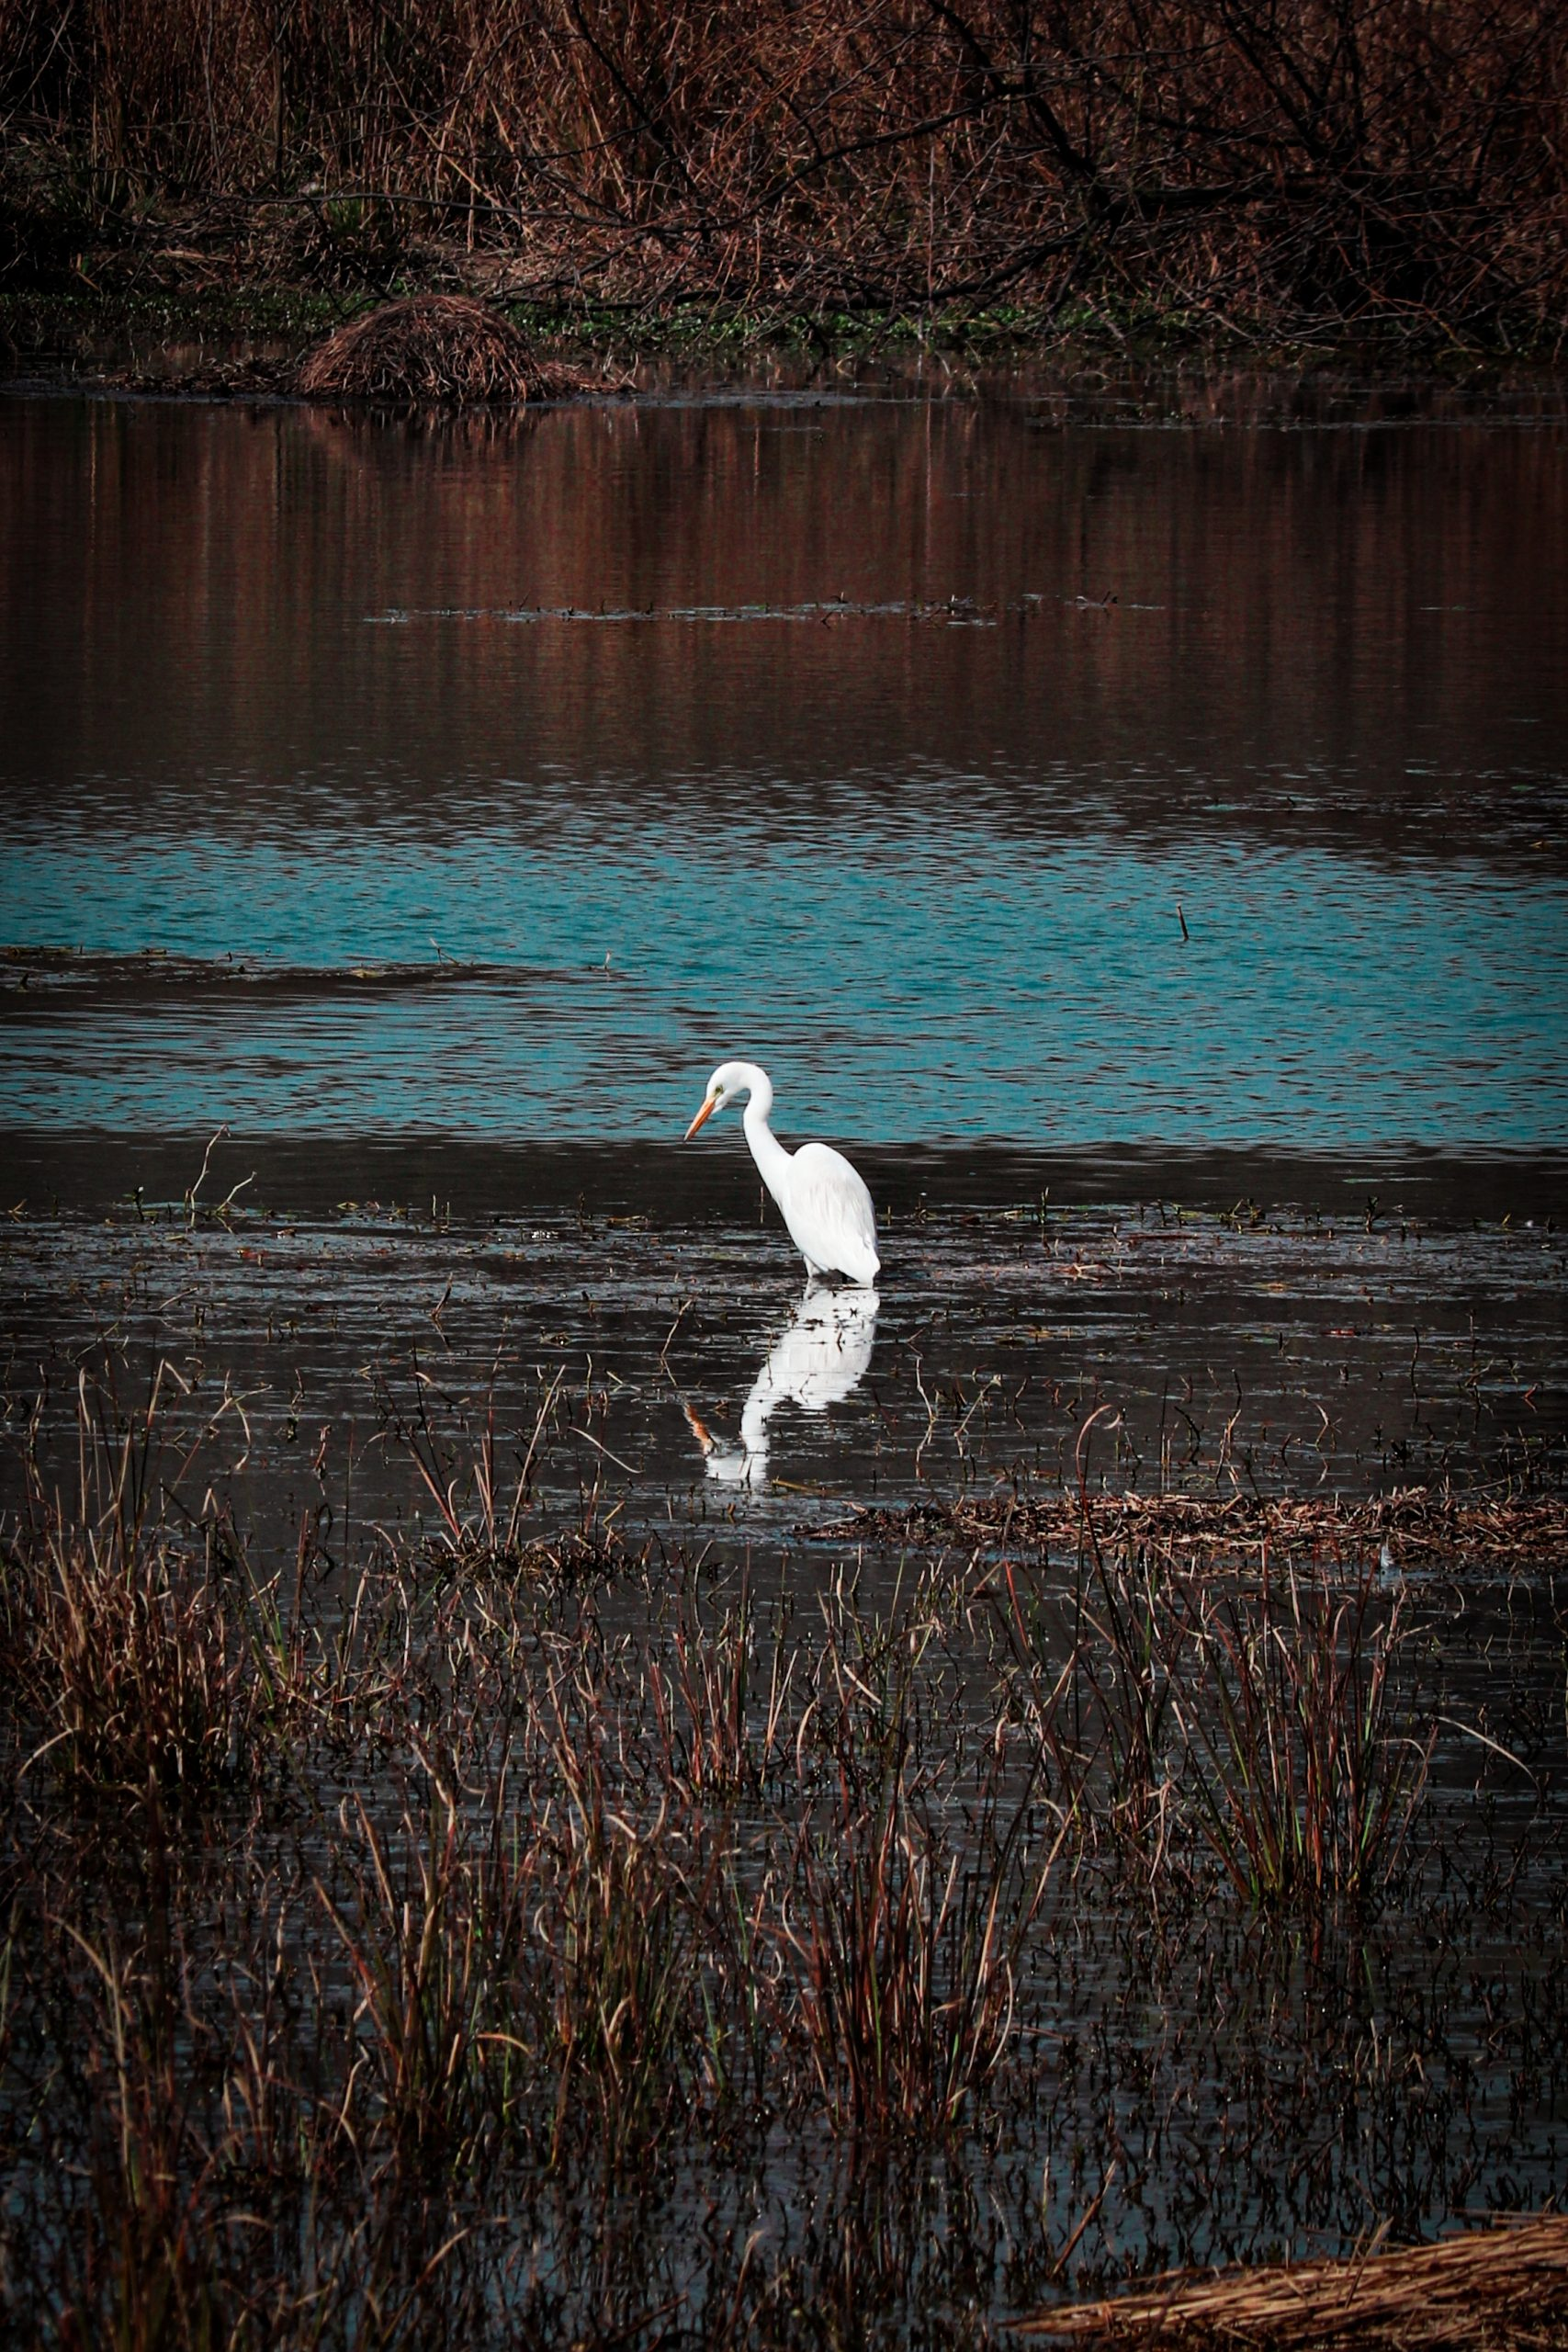 An egret in a pond